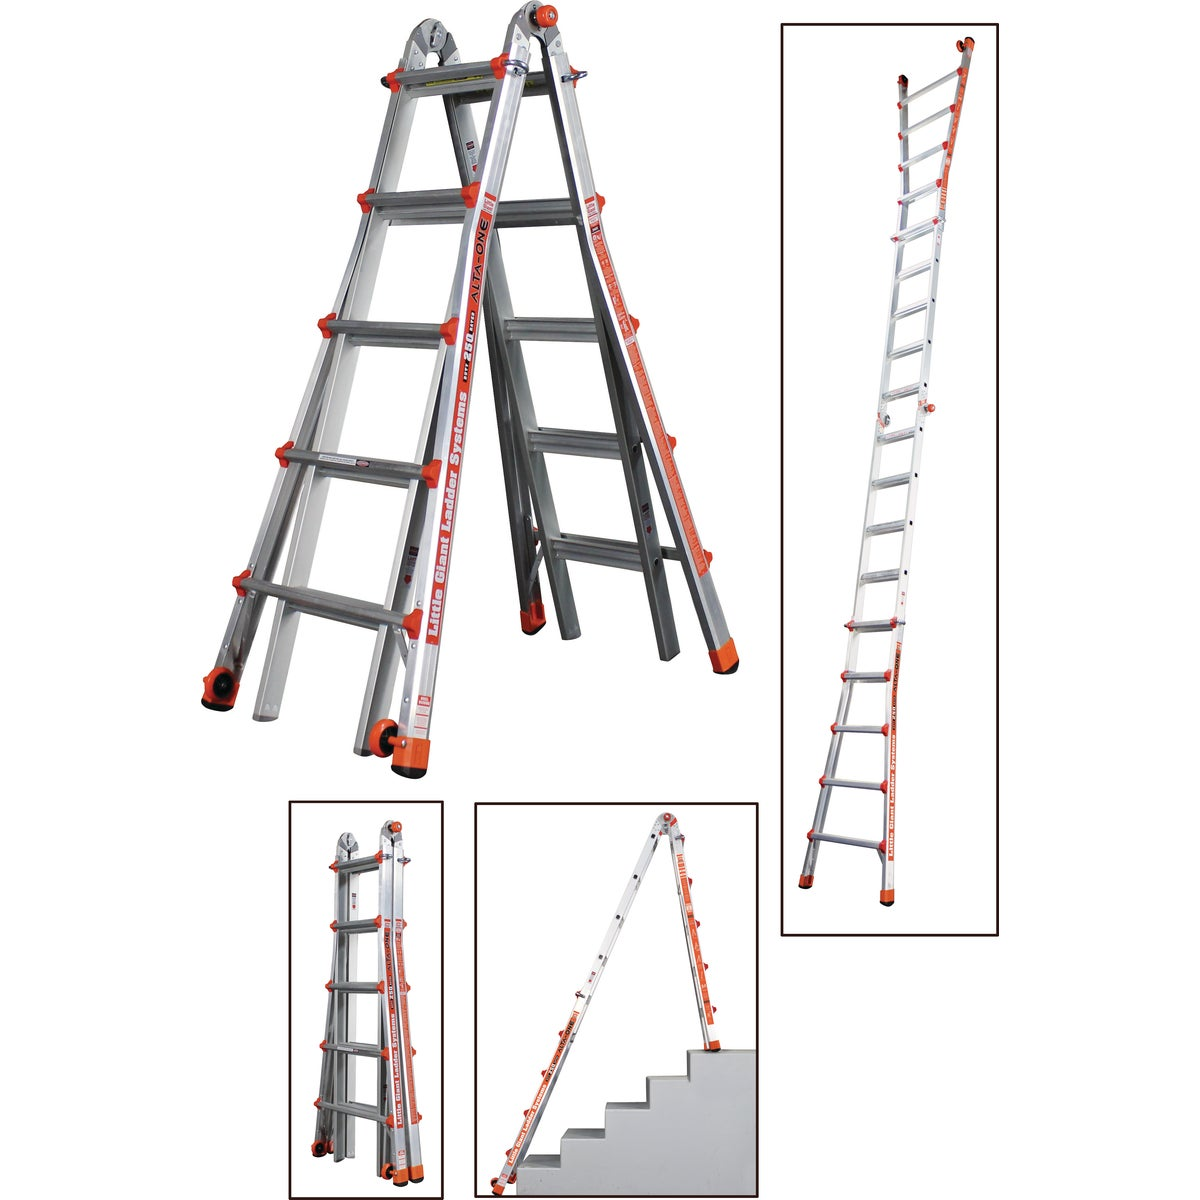 22' TELESCOPING LADDER - 14016-001 by Wing Enterprises Inc